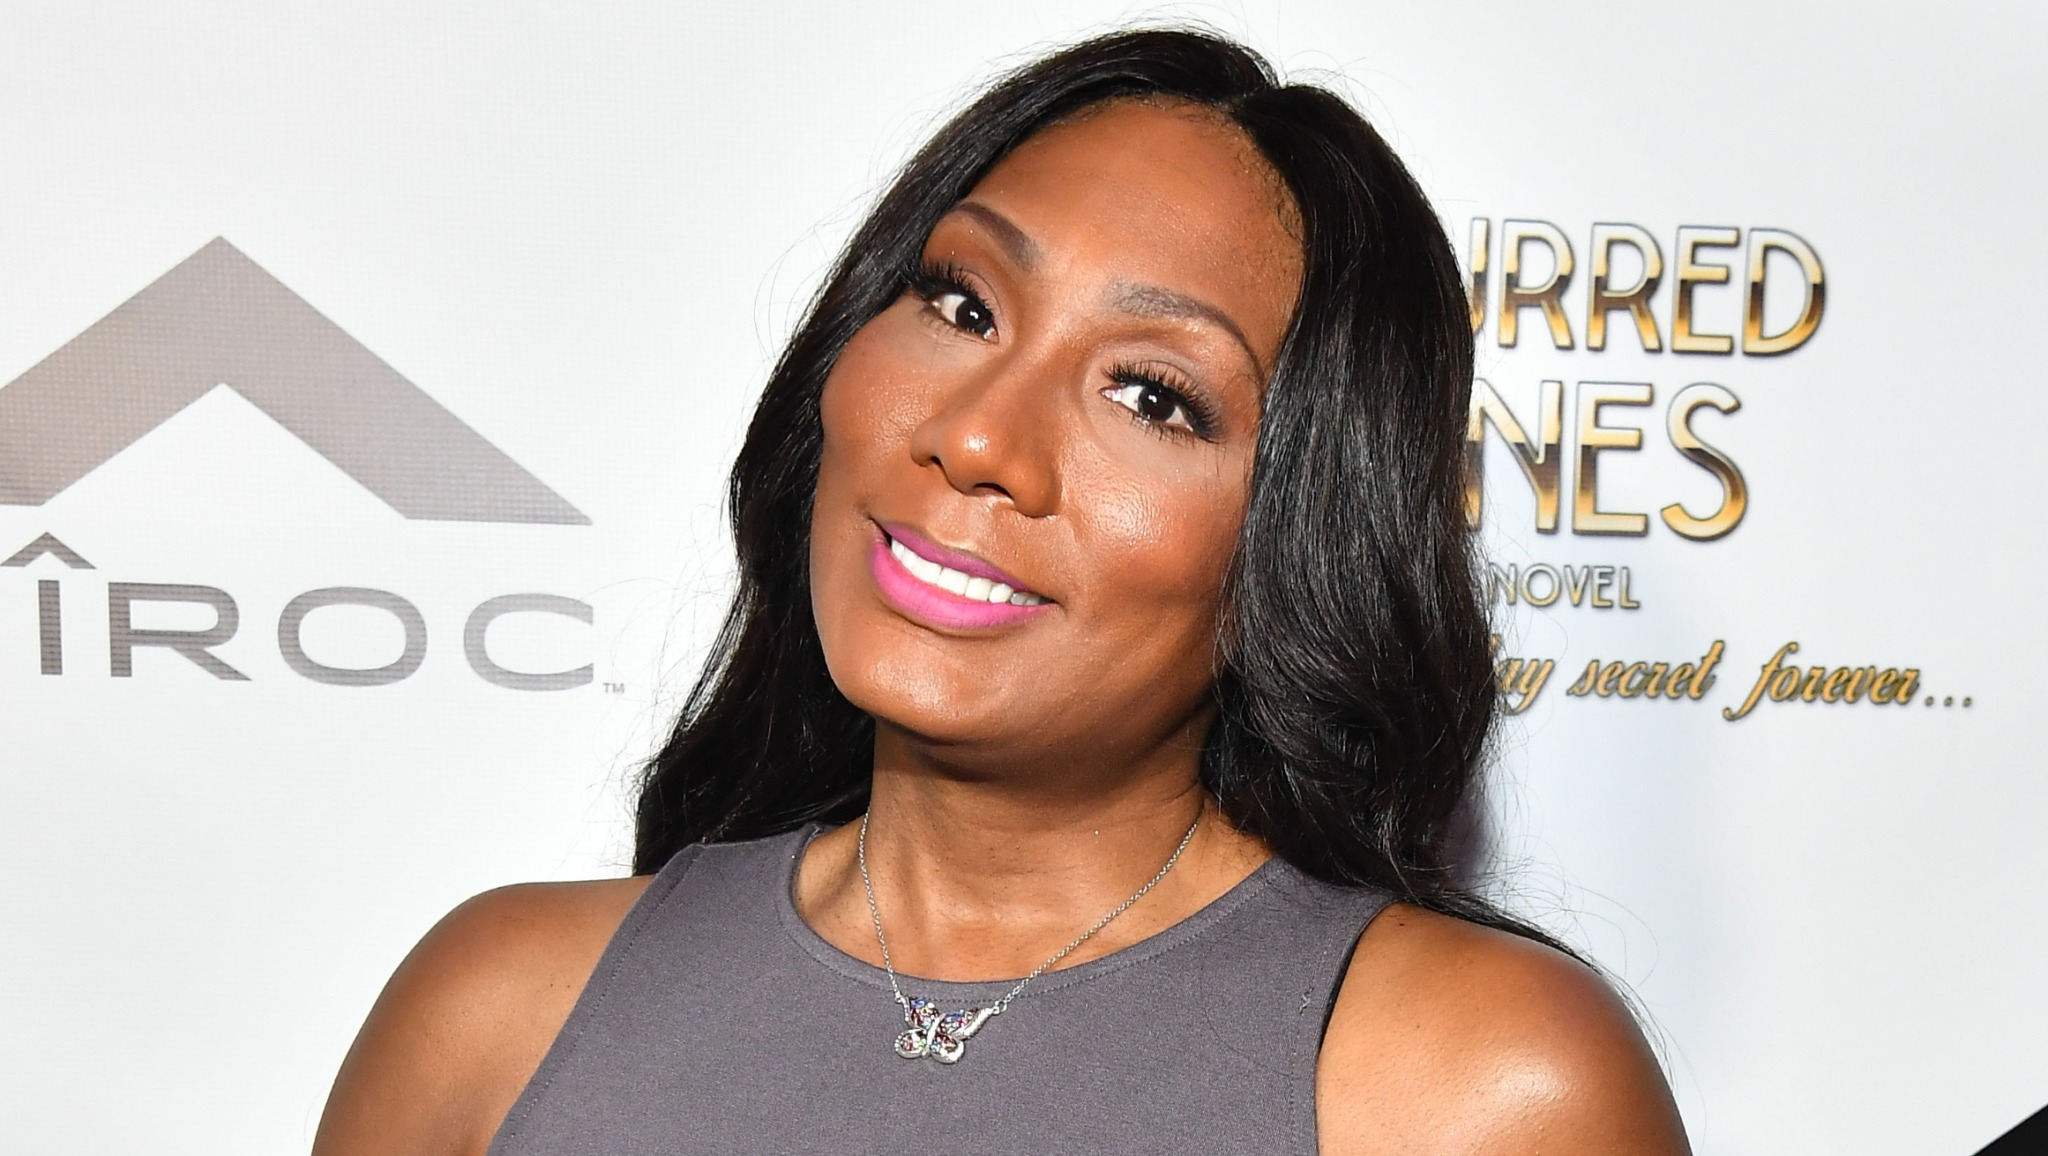 Towanda Braxton Shares A Photo From Her Date Night And Fans Are In Awe: 'You Deserve This'